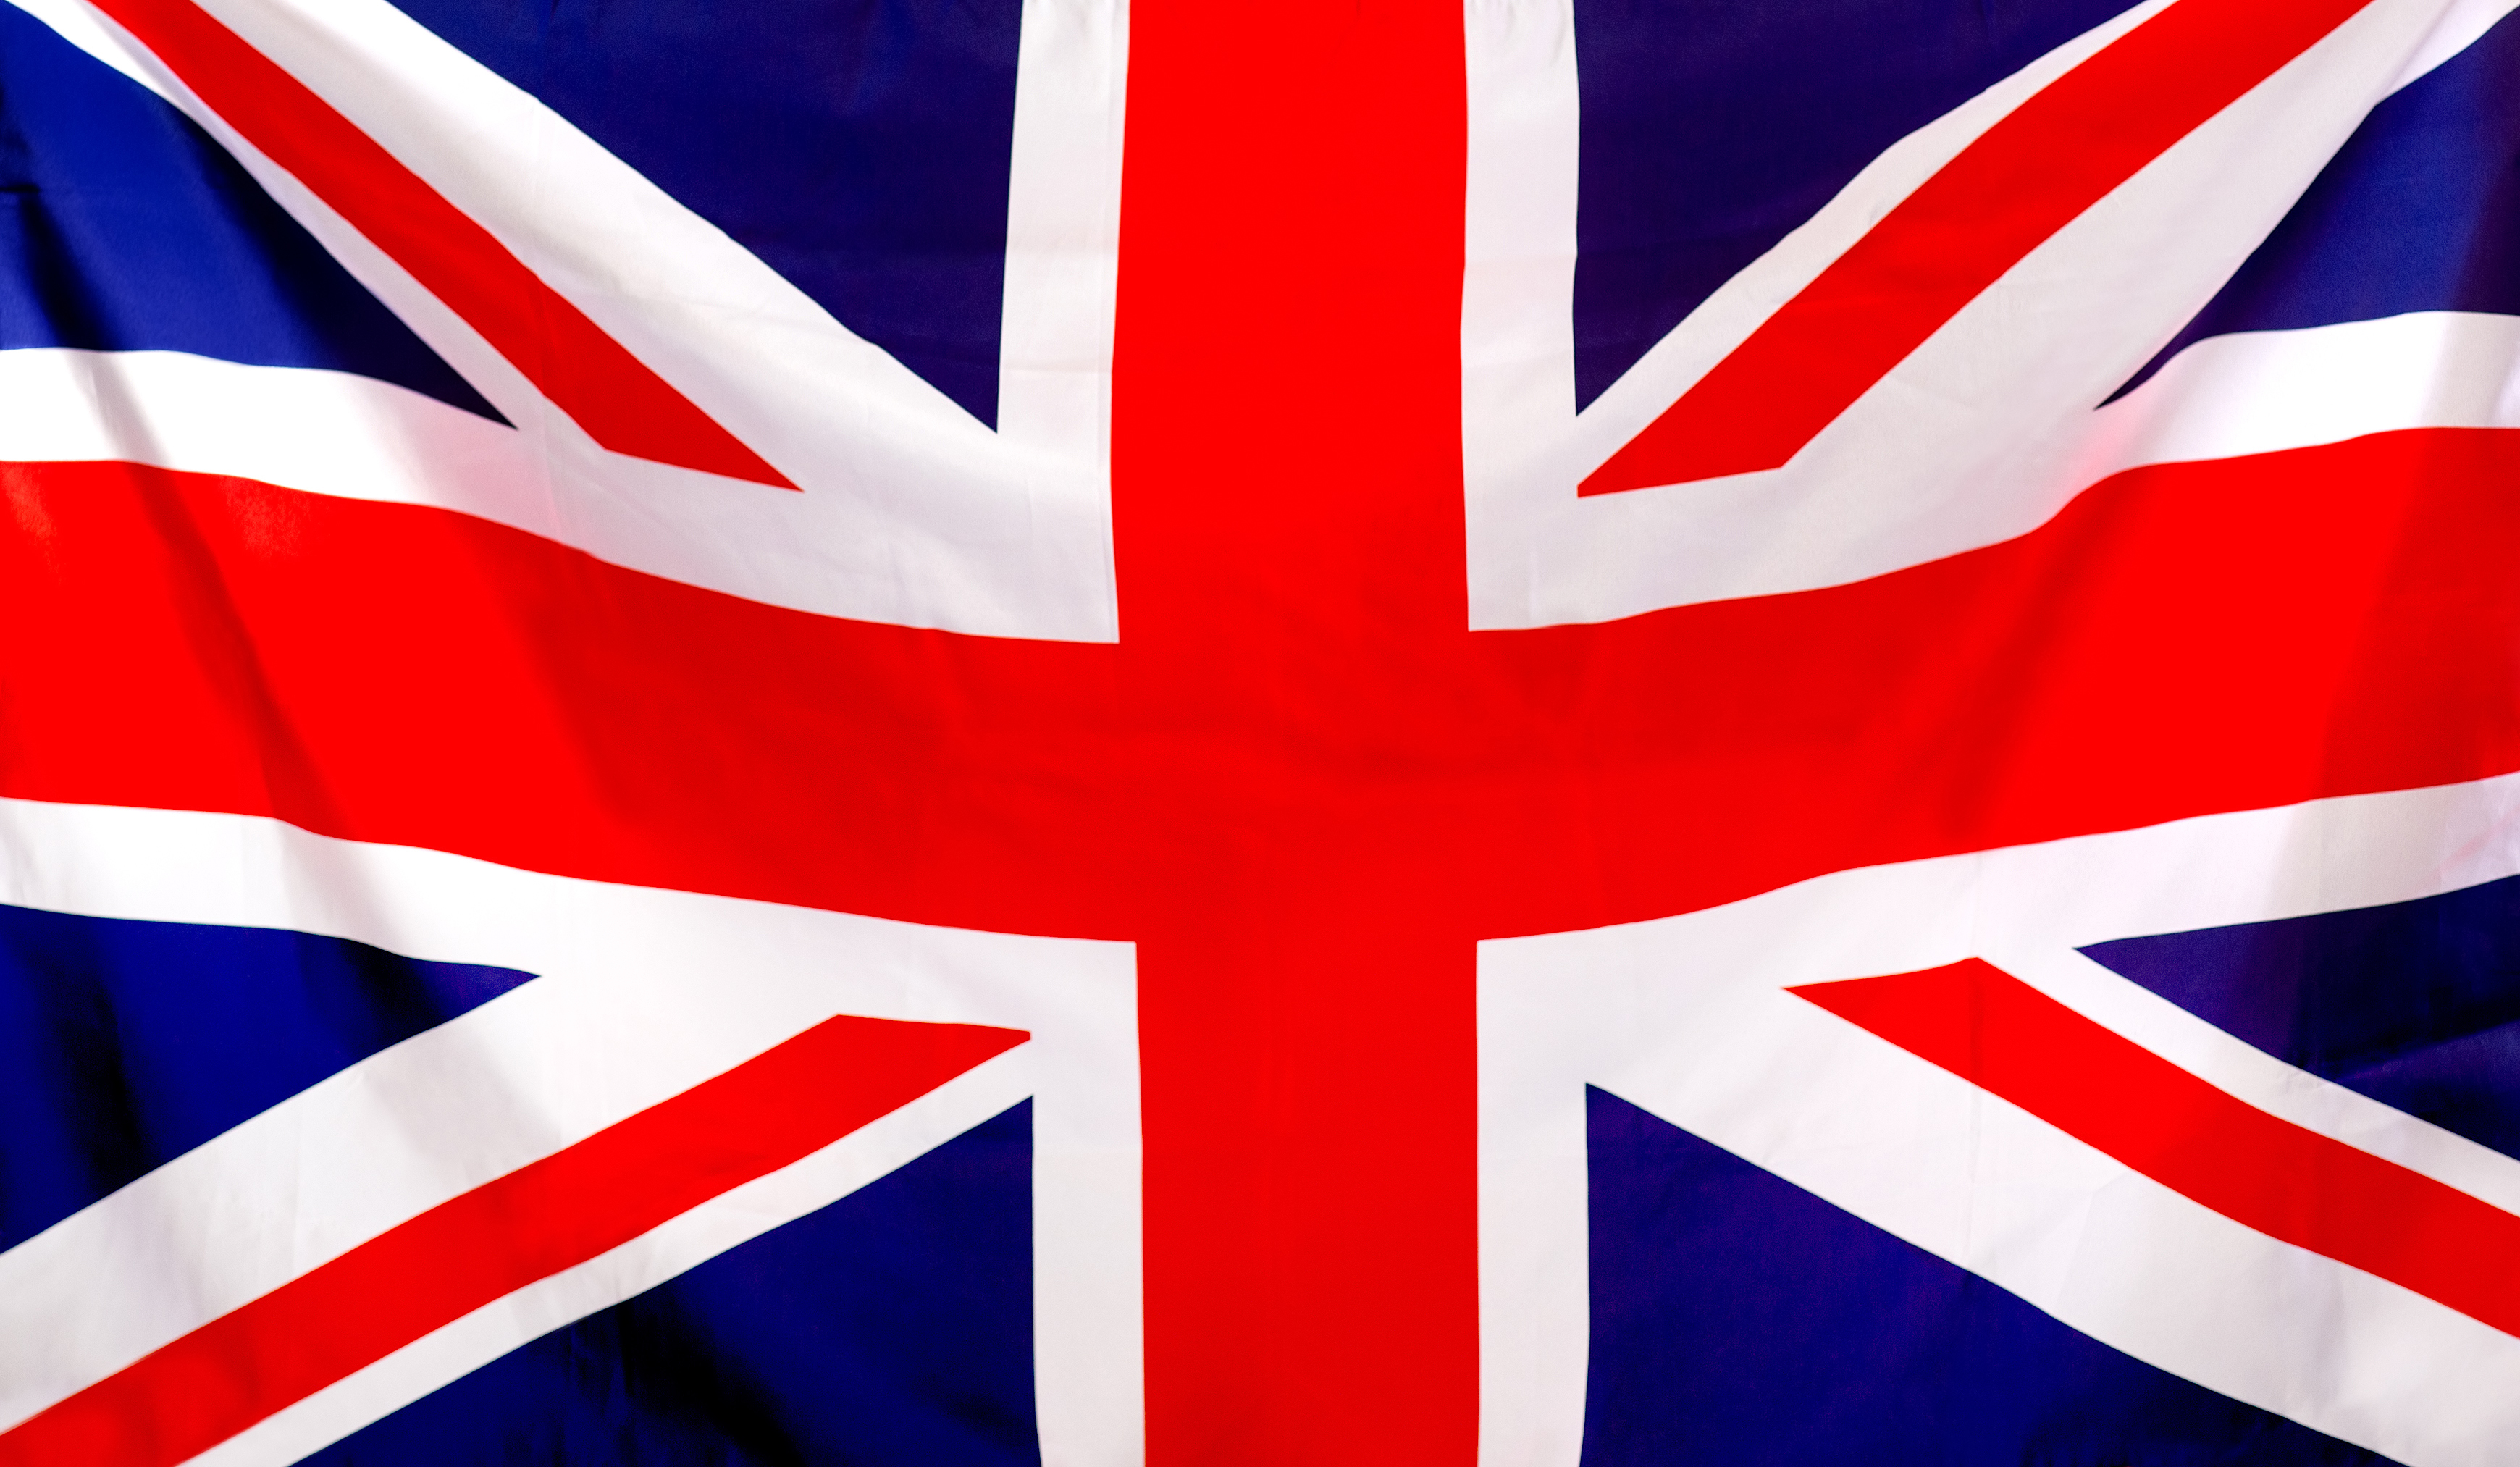 Union Jack flag to be used as background